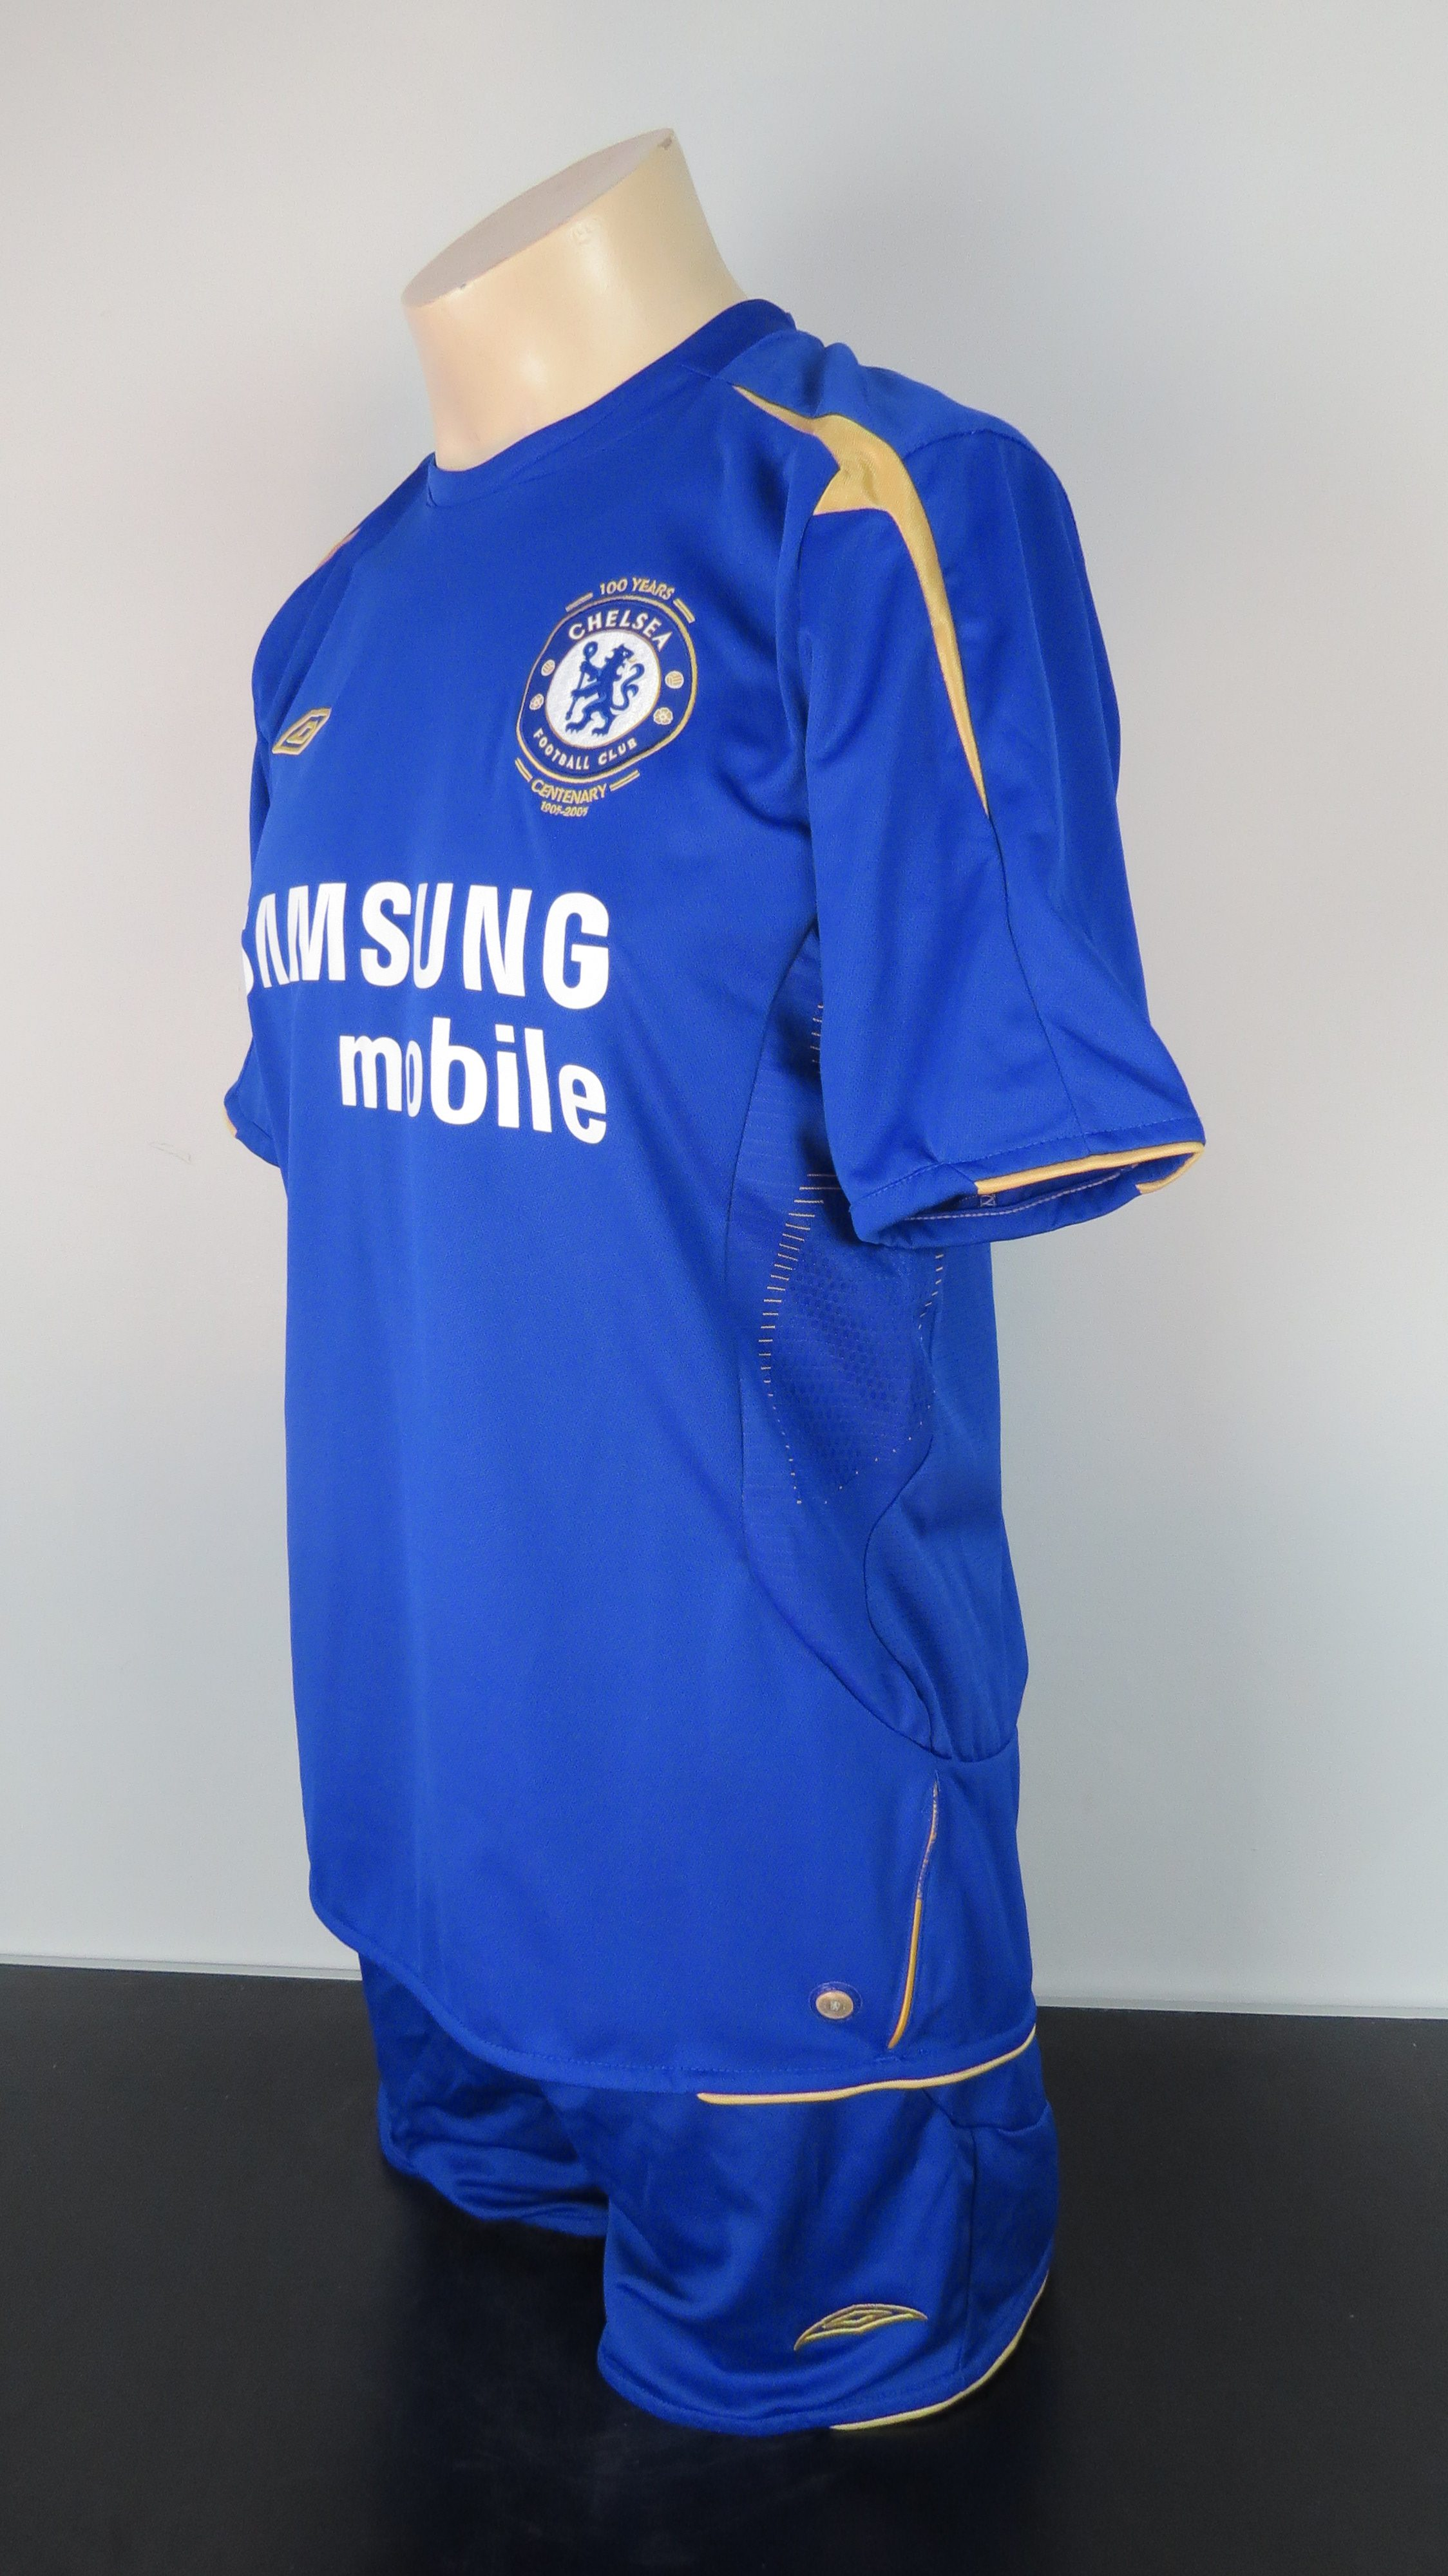 0878d2819 Chelsea 2005-06 centenary full kit home shirt Umbro size M shorts L ...